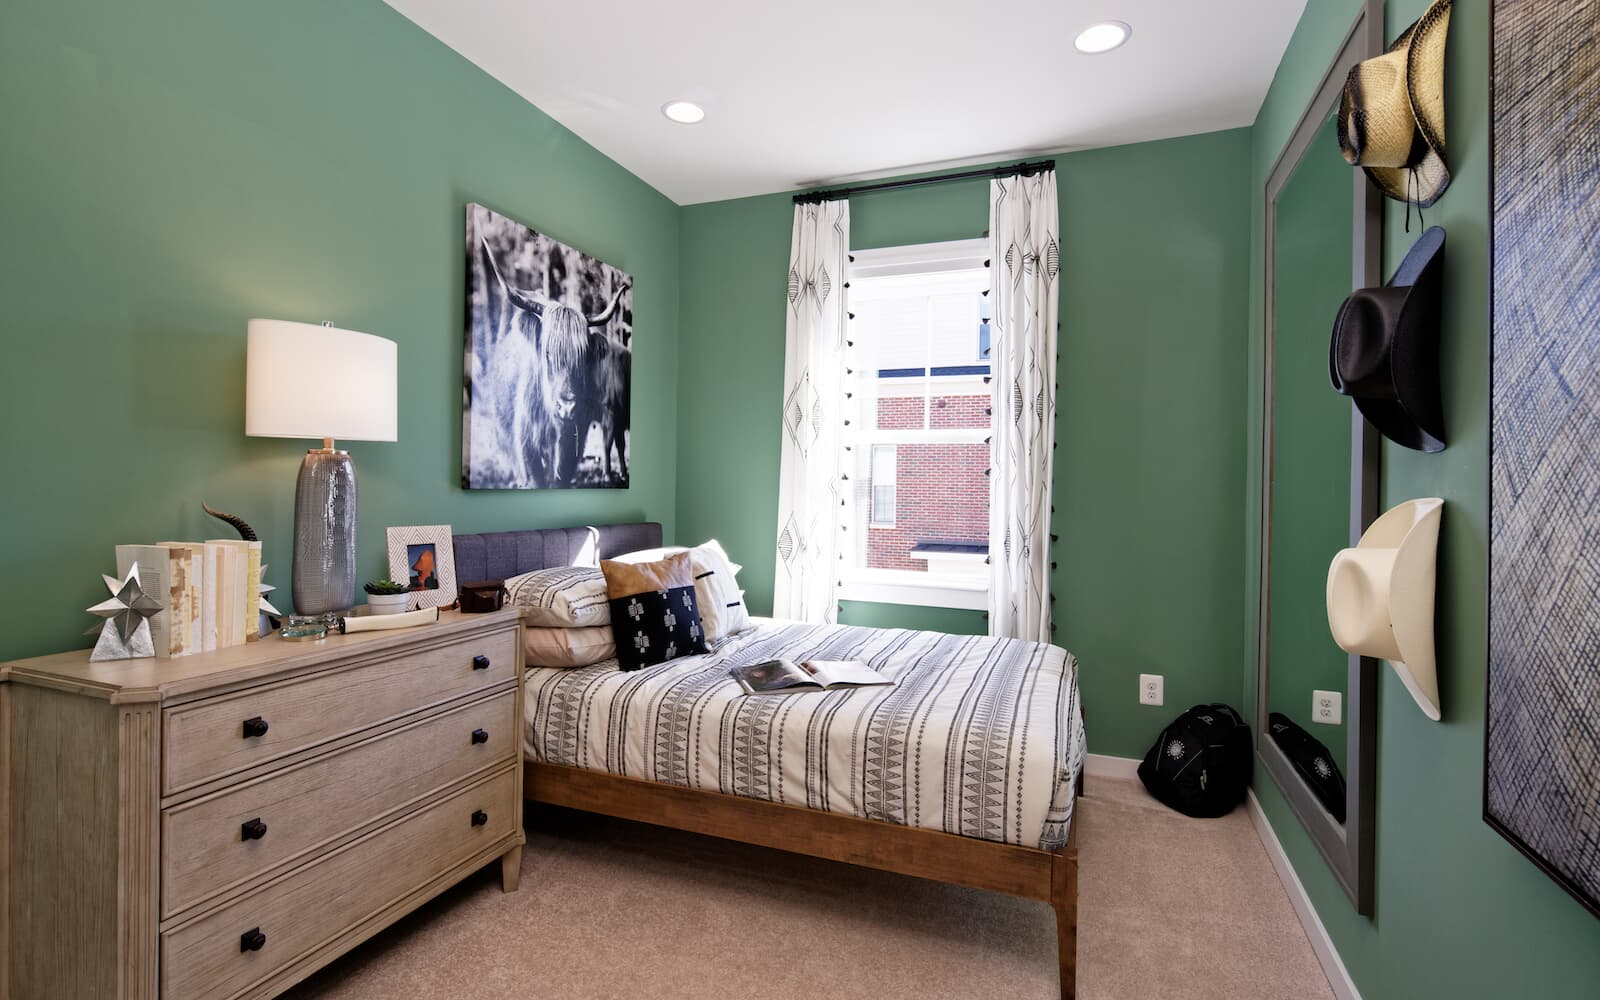 Moorefield-bedroom-townhomes-north-potomac-md-travilah-station-brookfield-residential